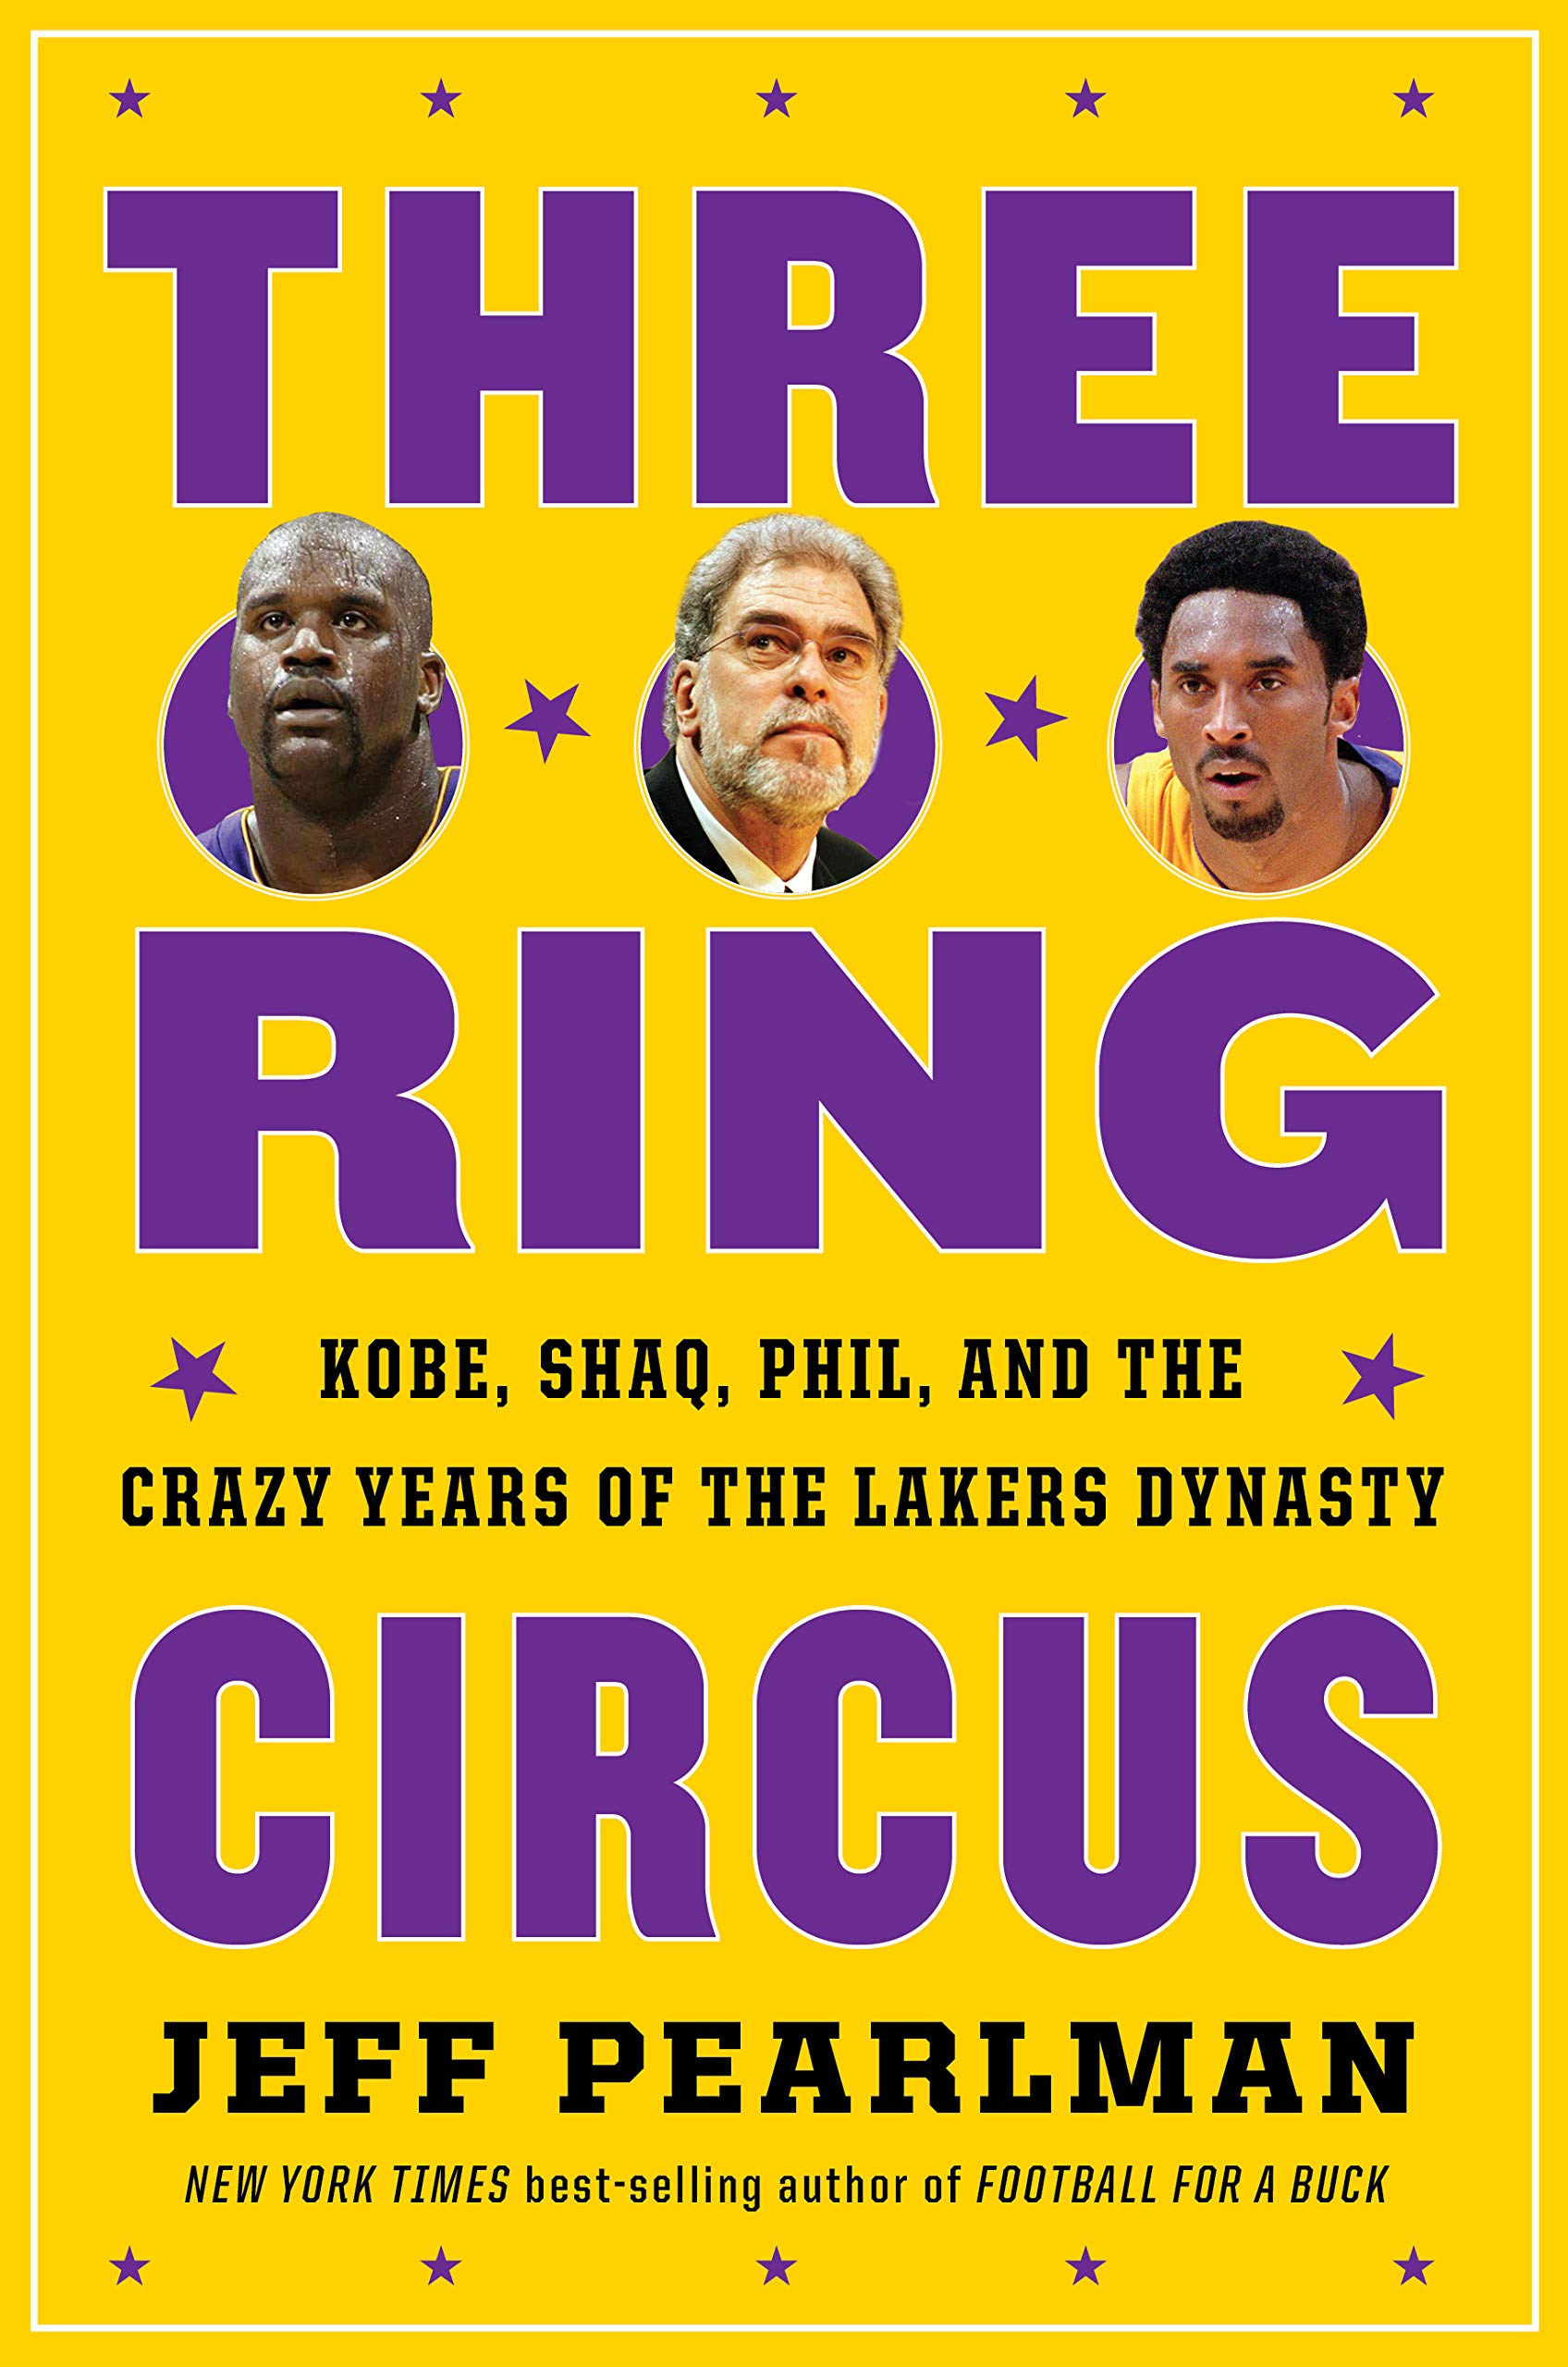 Three Ring Circus Kobe Shaq Phil And The Crazy Years Of The Lakers Dynasty Pearlman Jeff 9781328530004 Amazon Com Books